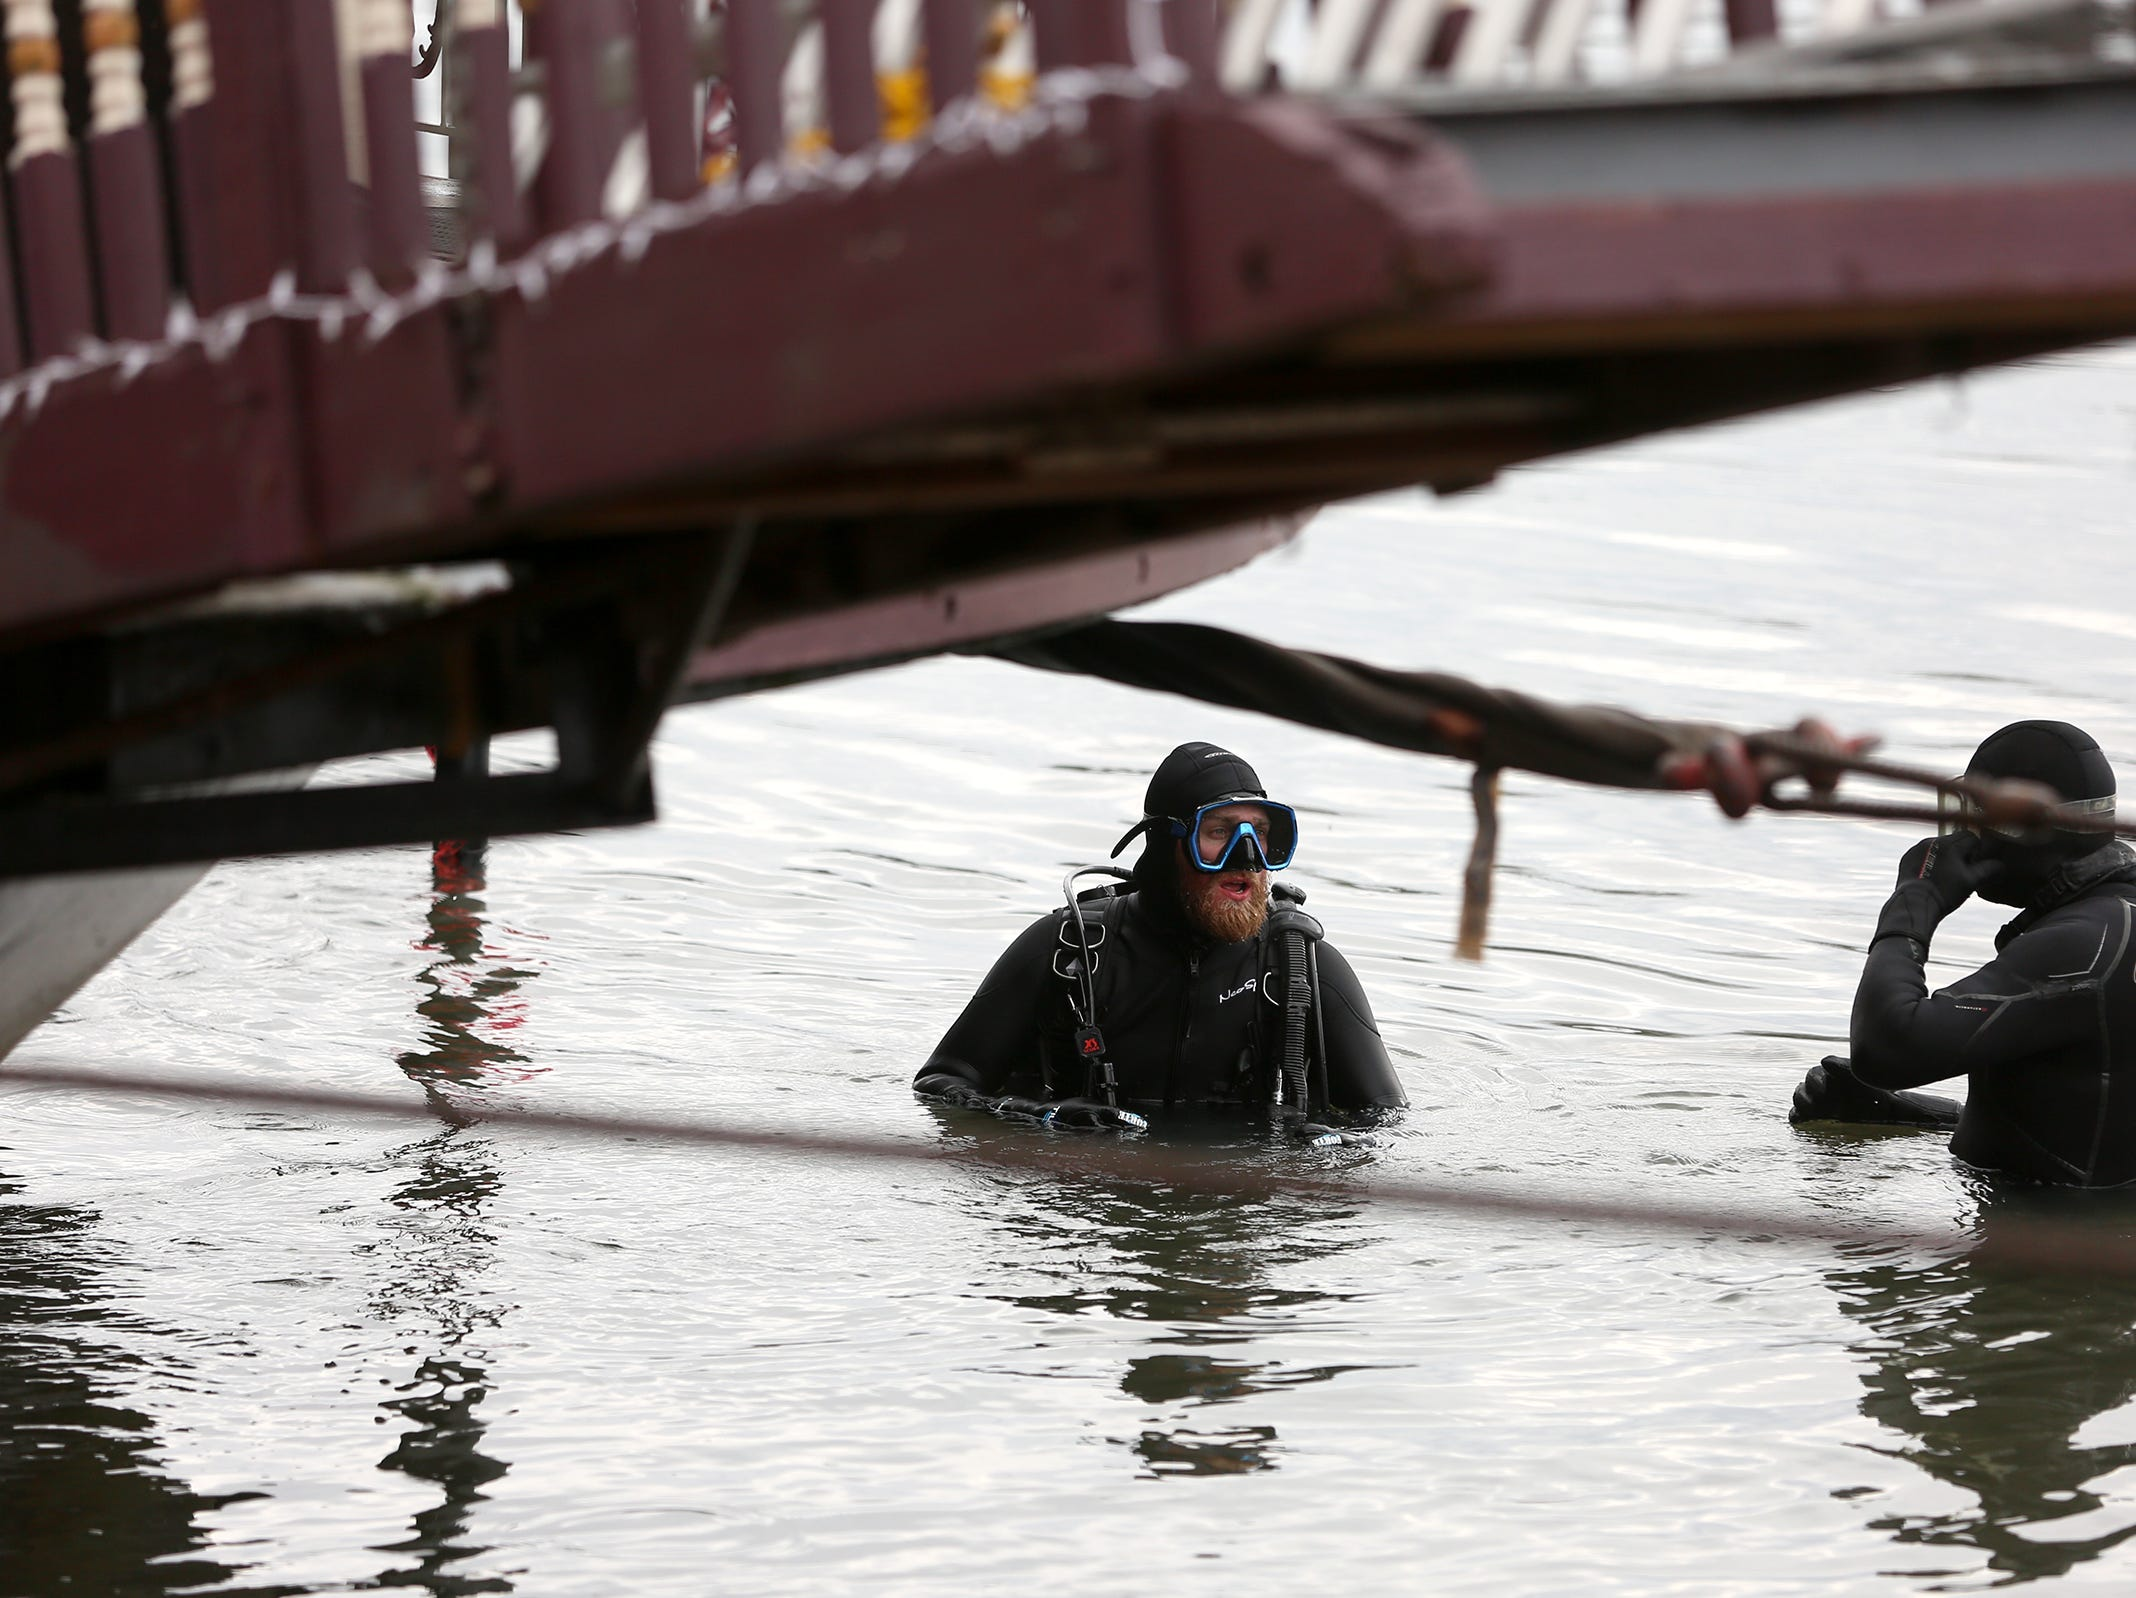 The Willamette Queen was brought ashore  for fiberglass repairs in Salem on Wednesday, Feb. 6, 2019. A crew from Emmert International, including scuba divers, worked for a week to lift the boat out of the Willamette River.